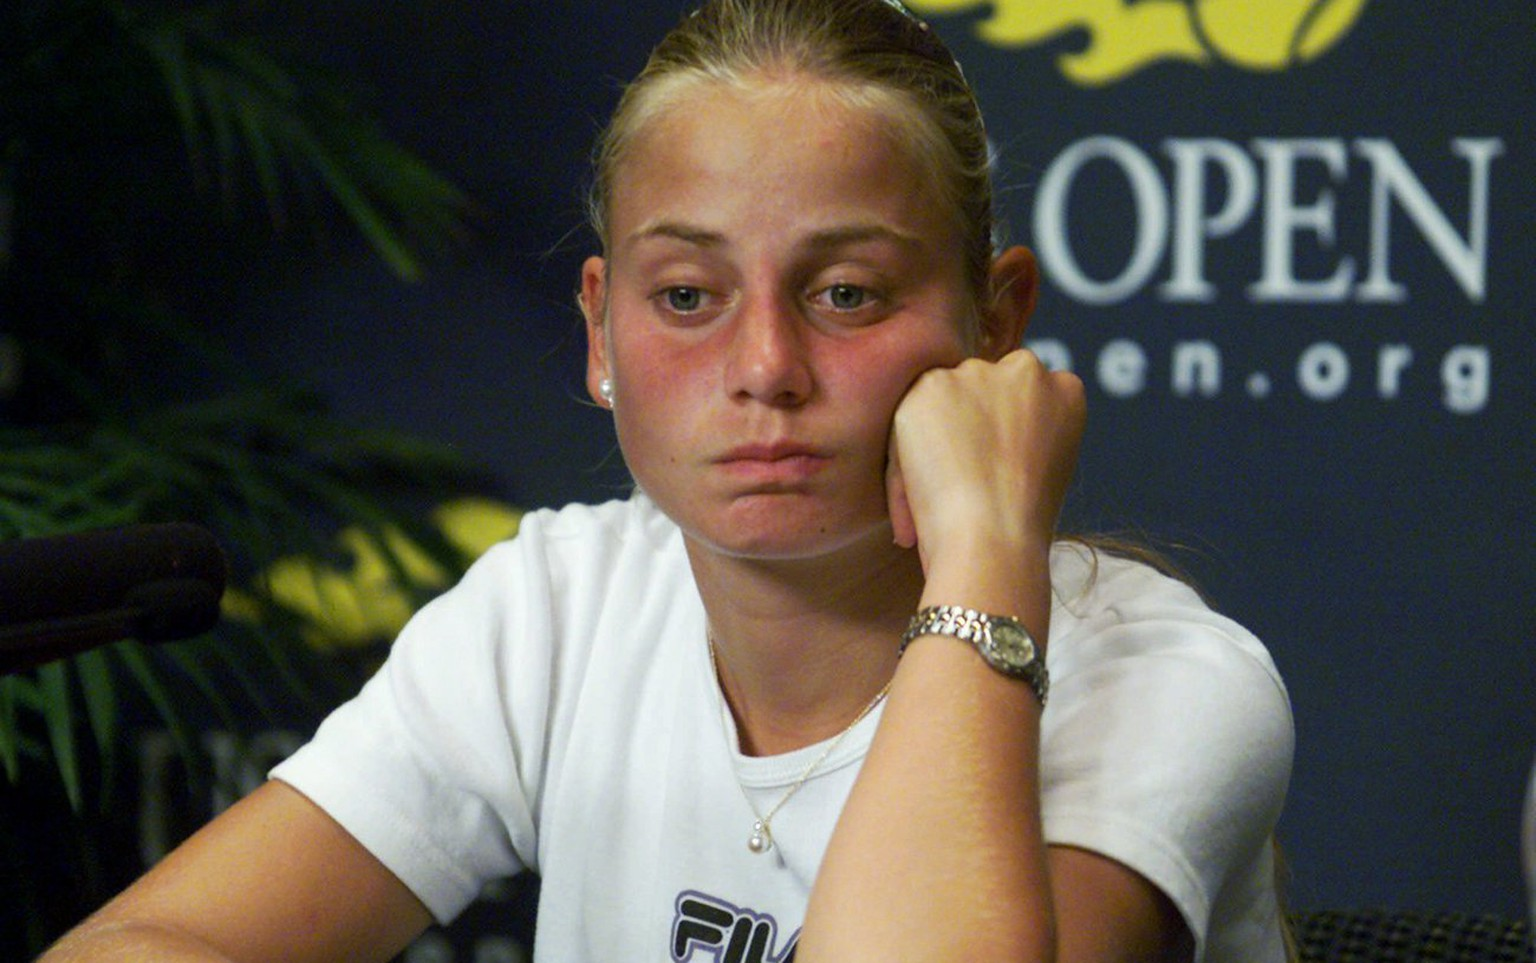 FILE - In this Aug. 31, 2000, file photo, Australia's Jelena Dokic reacts during a news conference at the U.S. Open tennis tournament in New York. Former Wimbledon semifinalist Jelena Dokic says her father physically, verbally and emotionally abused her from a young age when she started playing tennis. In an autobiography to be released this week, the 34-year-old Dokic says that Damir Dokic, who also was her coach, regularly beat her, pulled her hair and ears, kicked her and even spat in her face. (AP Photo/Ed Betz)